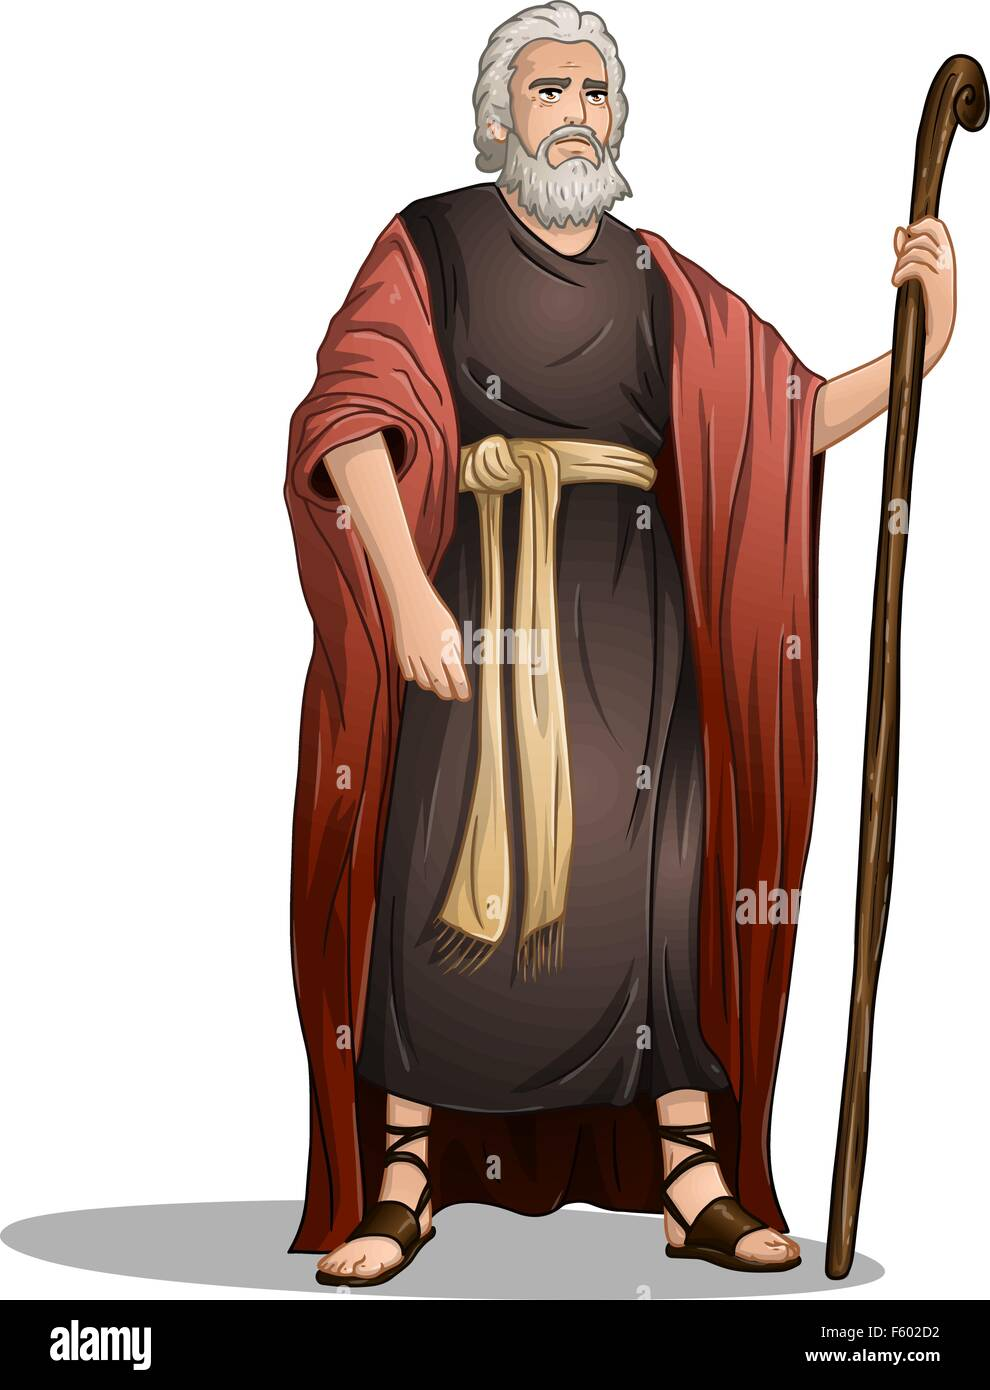 Vector illustration of Moses standing for Passover. - Stock Vector